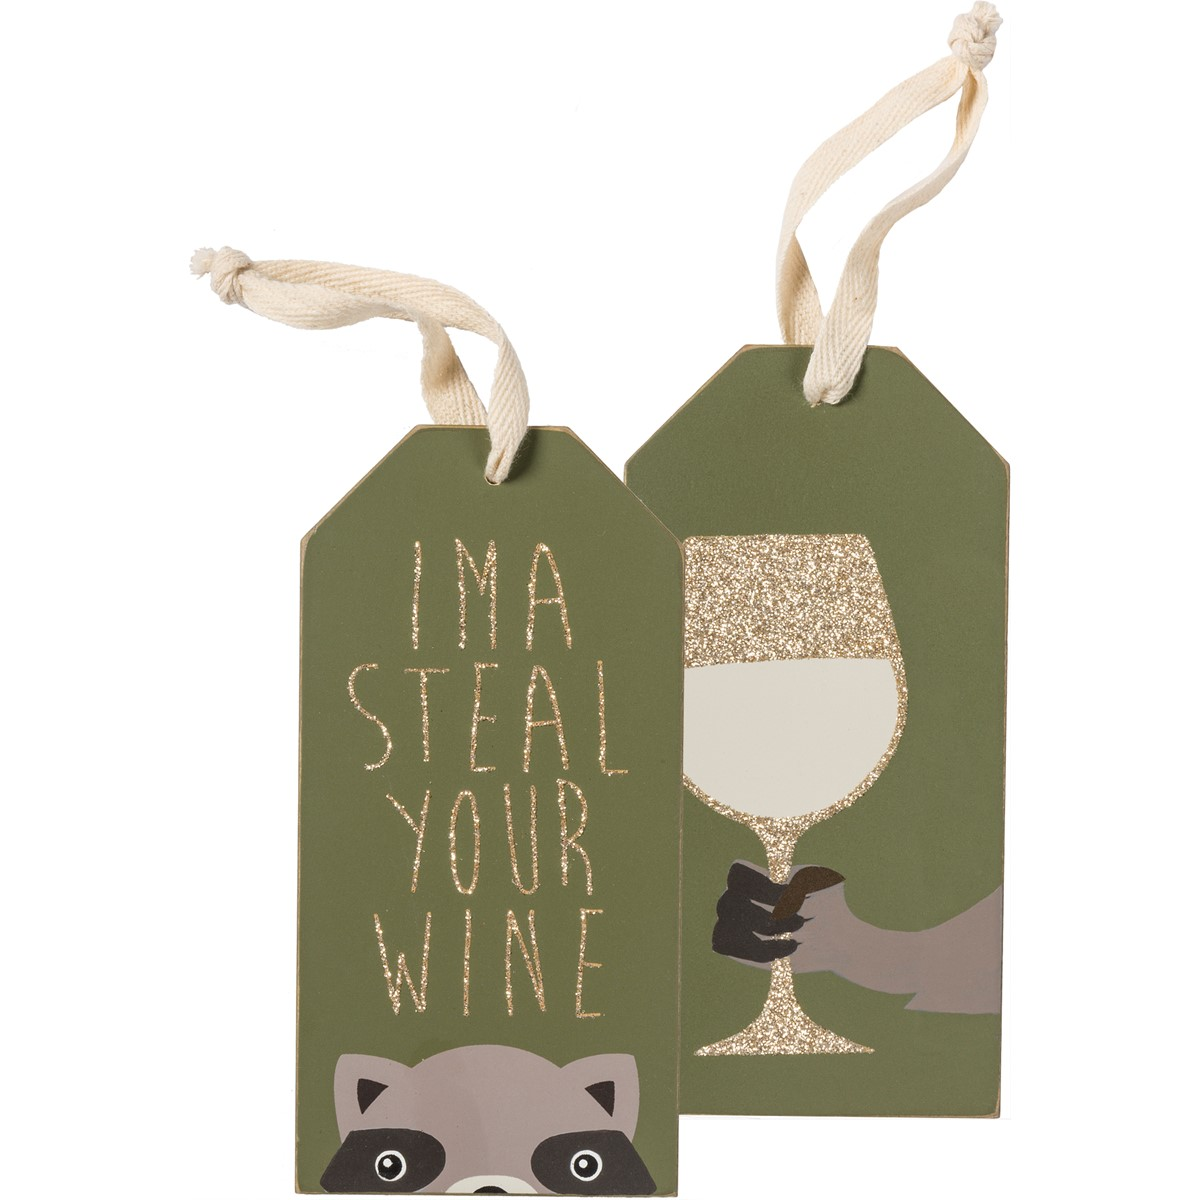 "Bottle Tag - Steal Wine  - 3"" x 6""  - Wood, Glitter, Cotton"